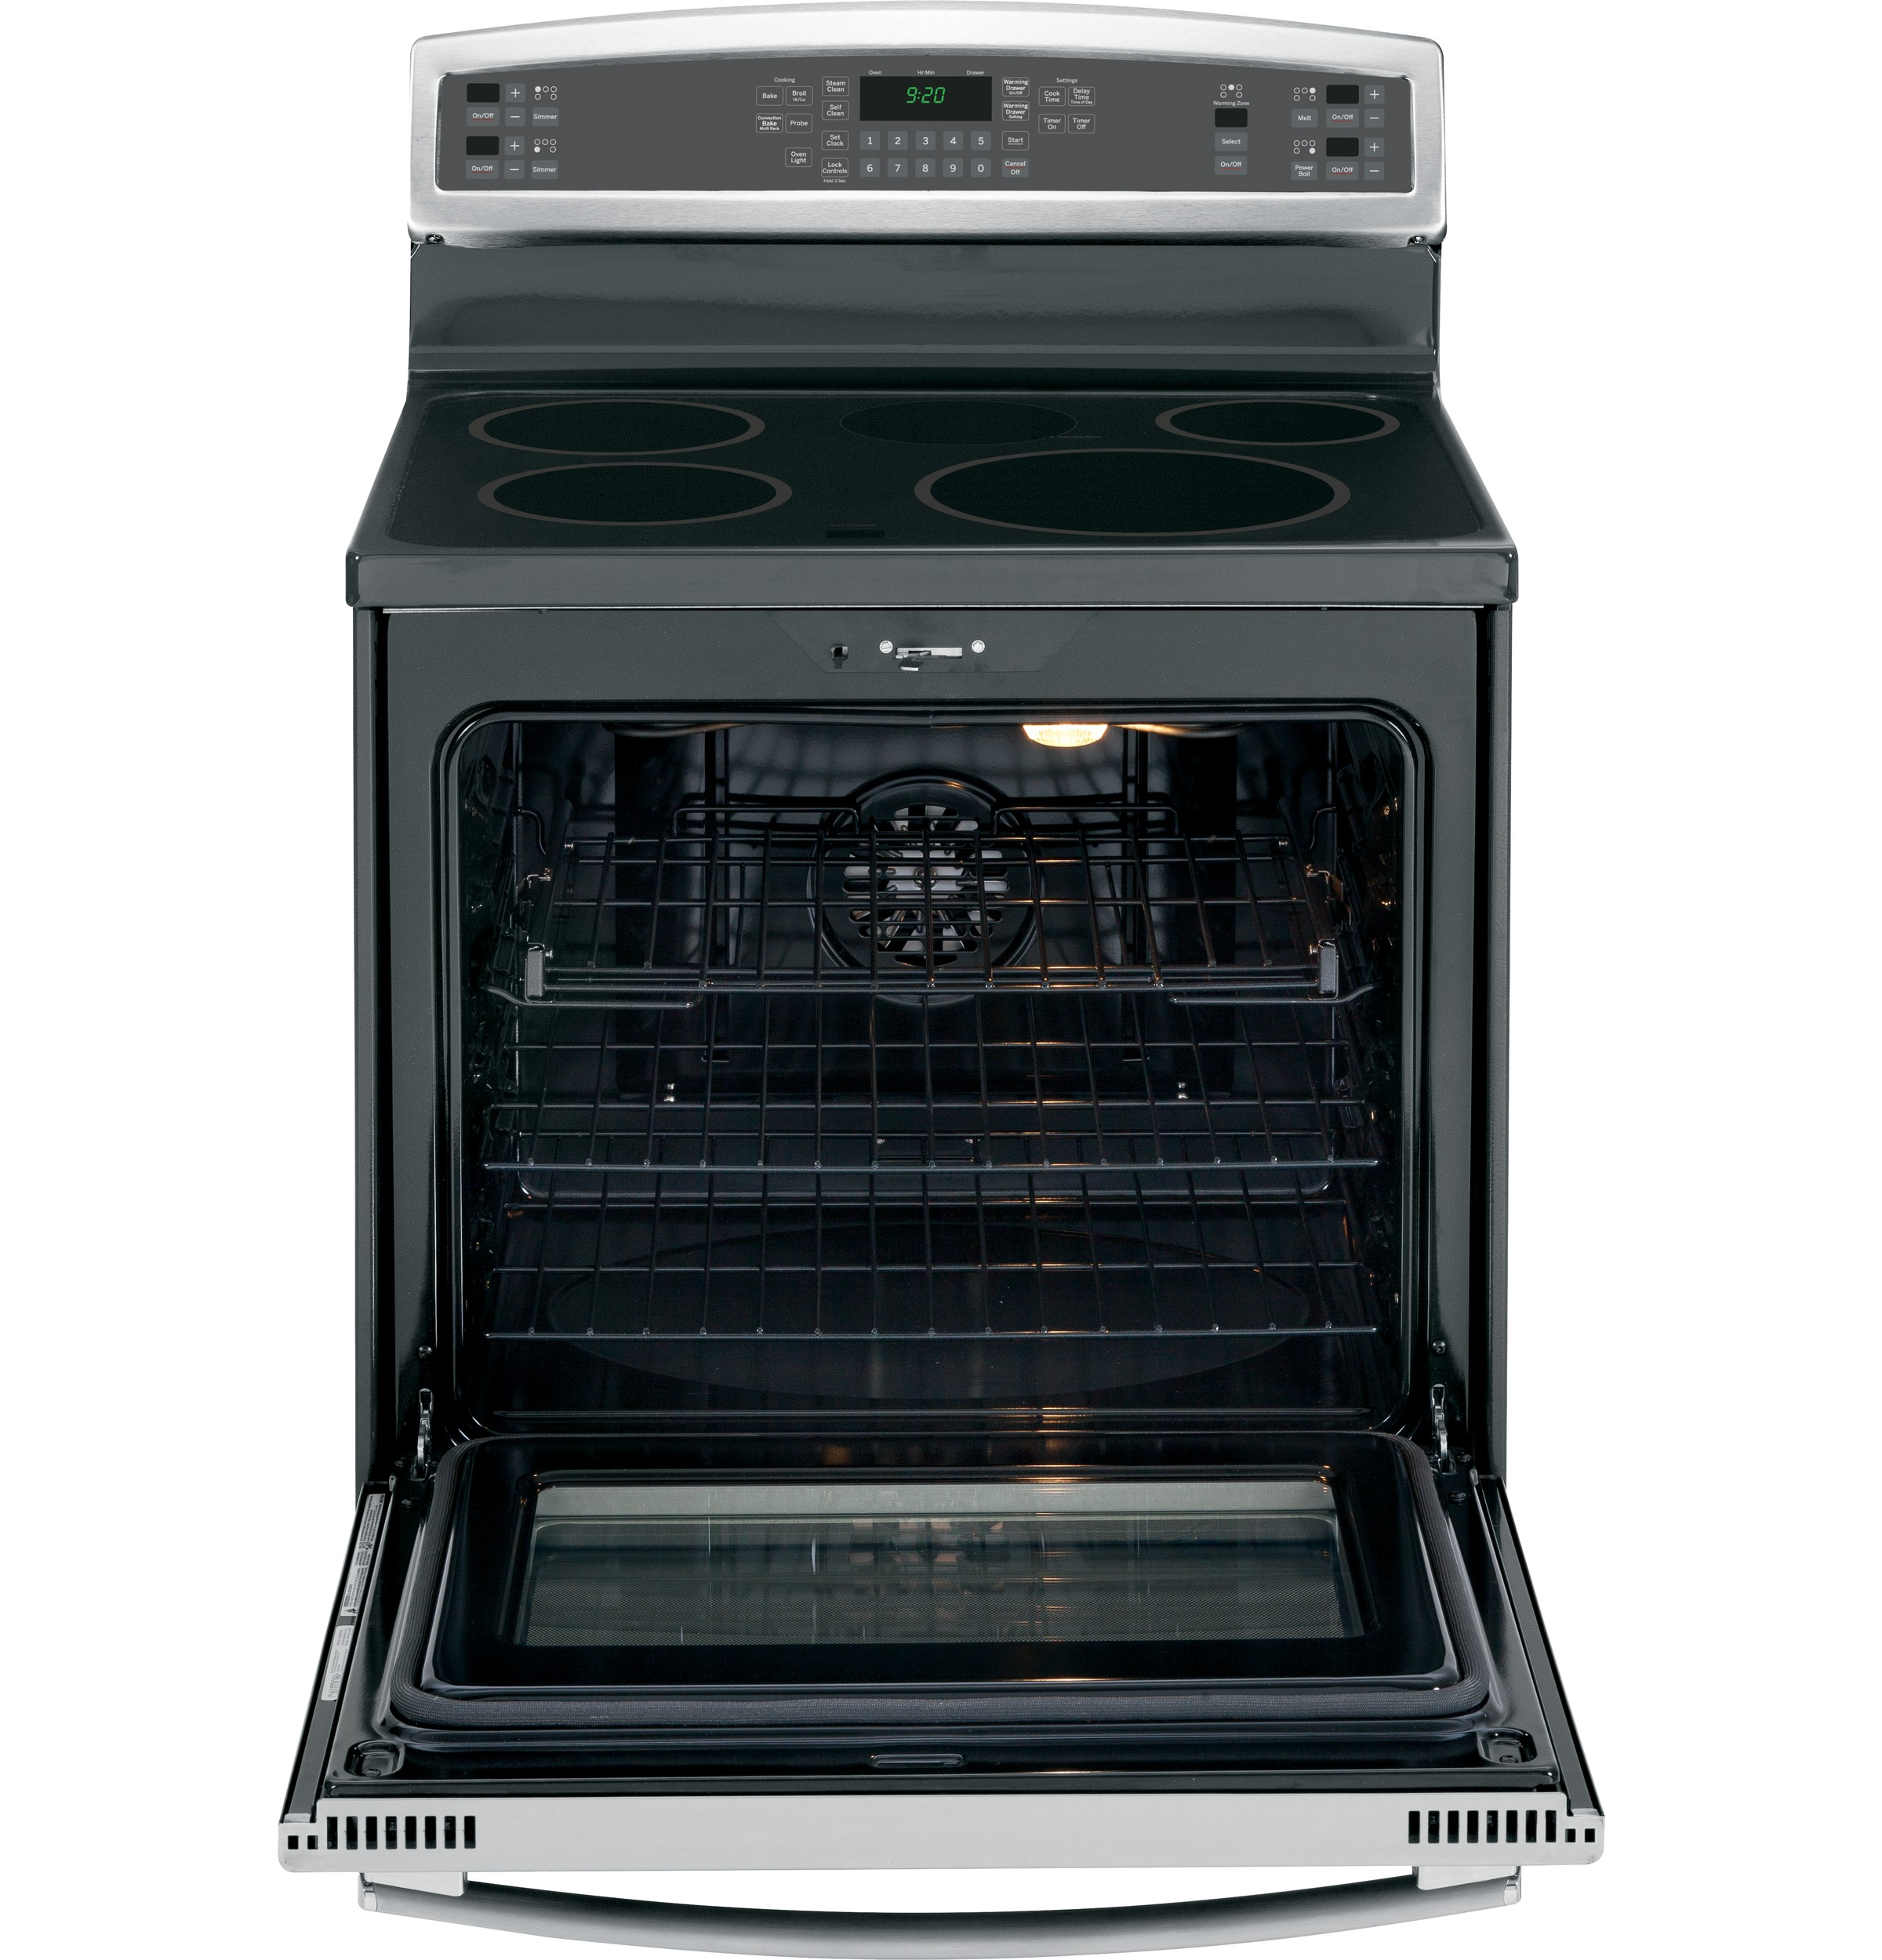 Ge Profile Series 30 Free Standing Induction And Convection Range White Cream In Cooker Product Image